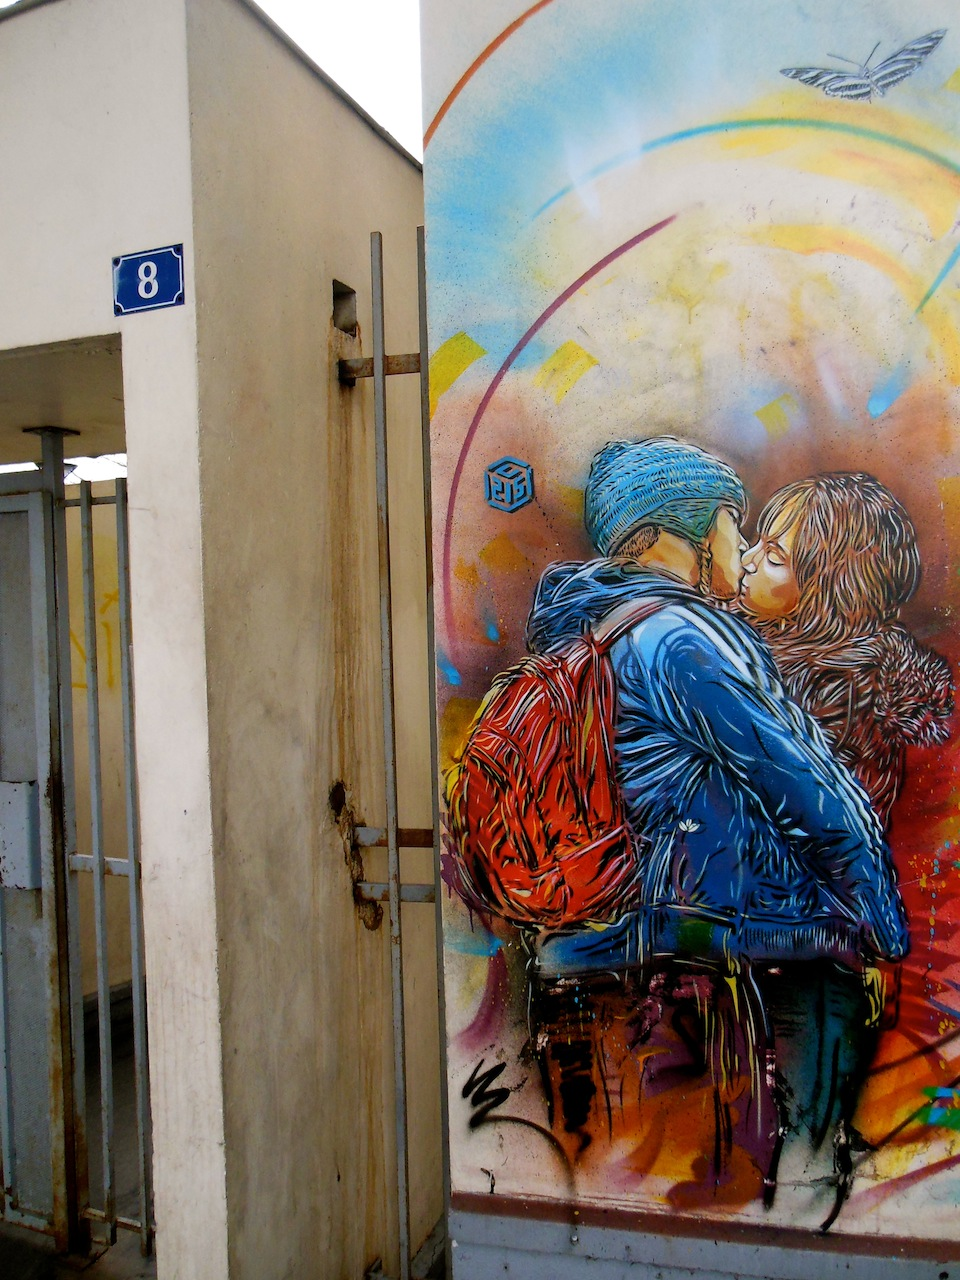 Street Art by C215 in Vitry-sur-Seine, France 9y4279